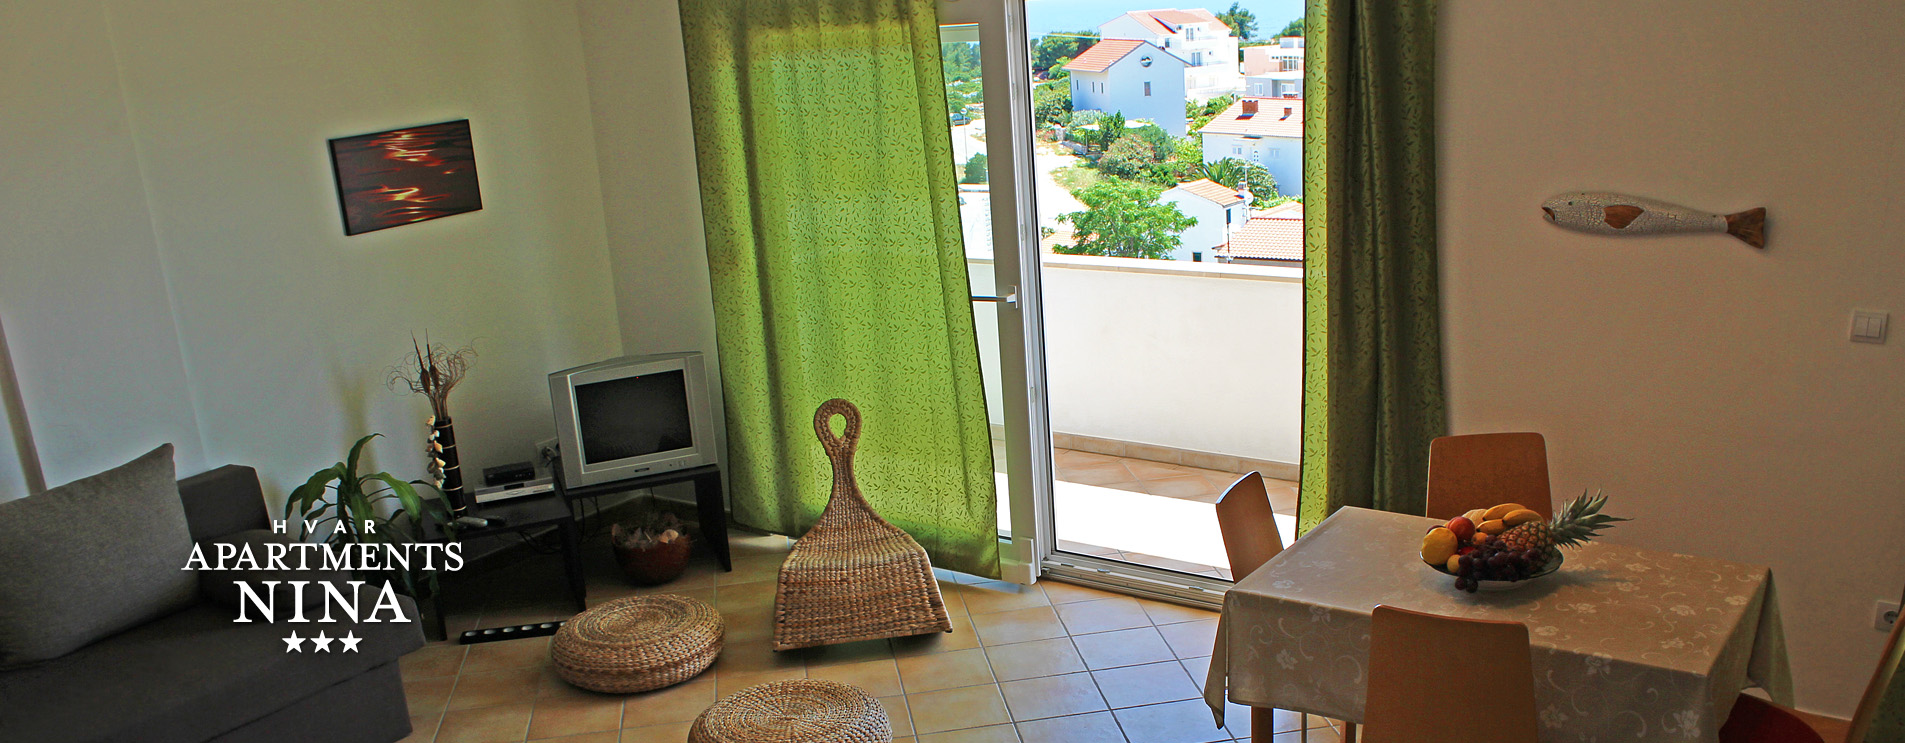 Apartments Nina in the town of Hvar